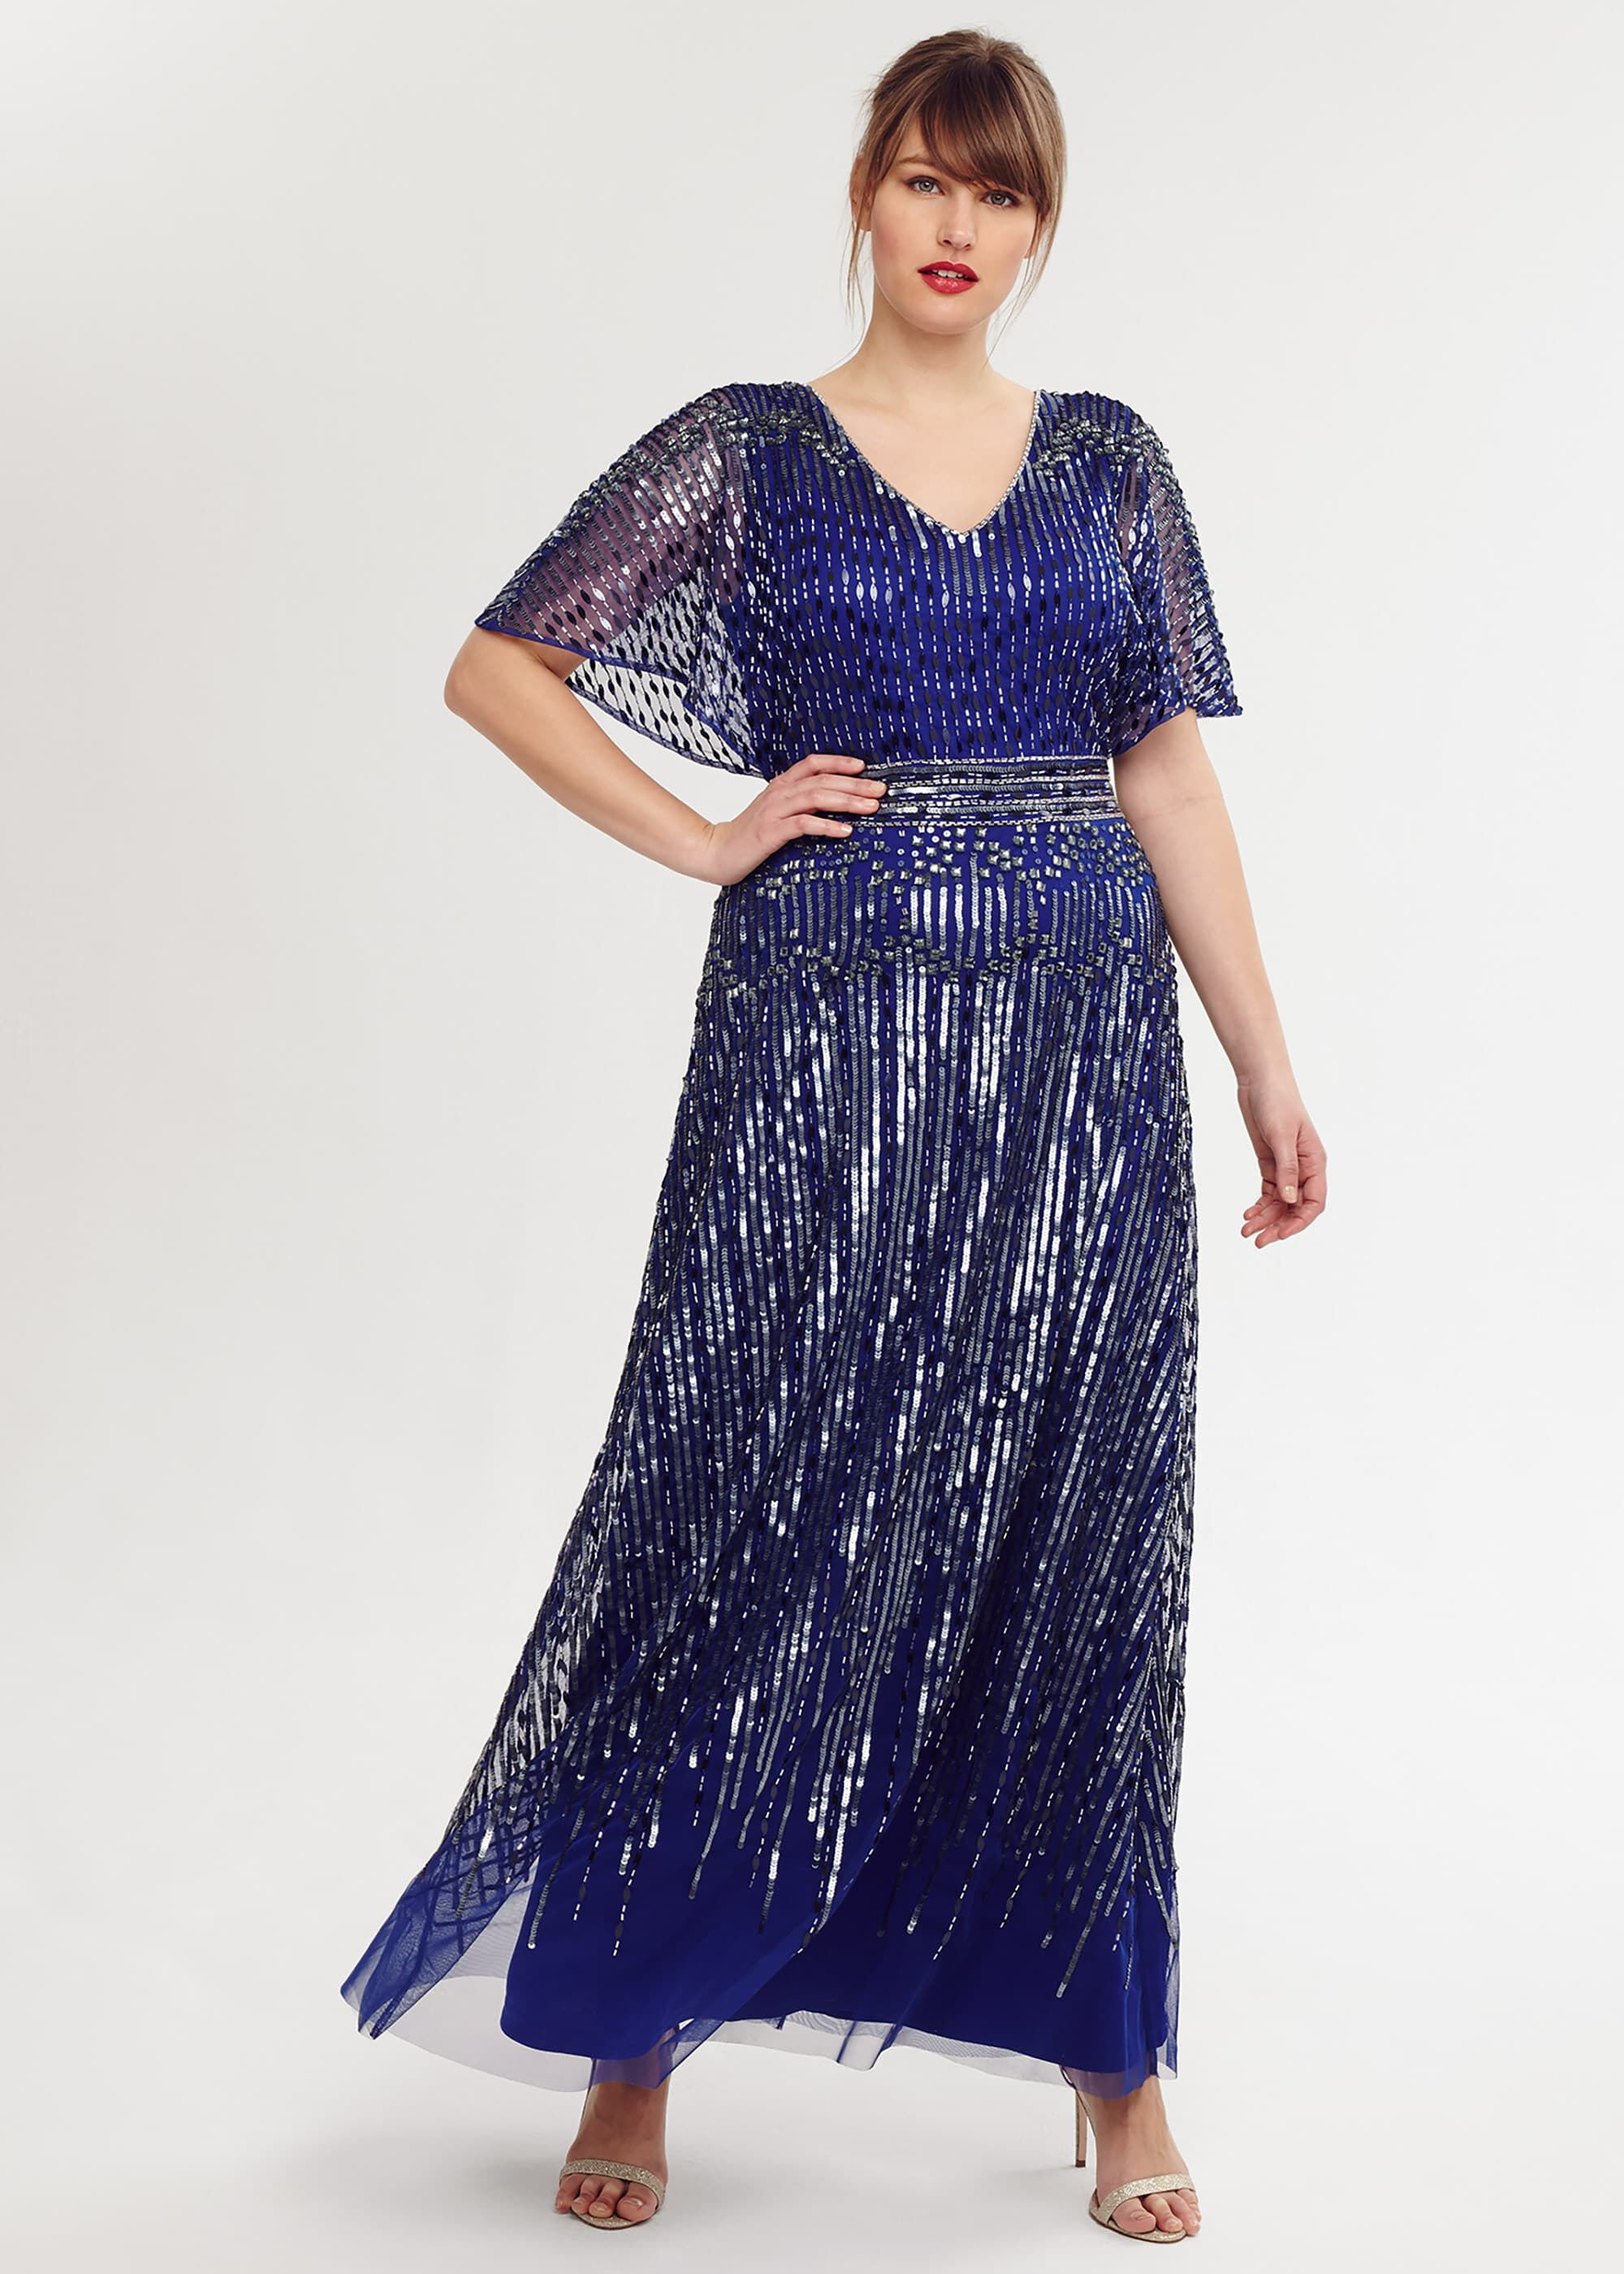 Studio 8 Athena Beaded Maxi Dress, Blue, Maxi